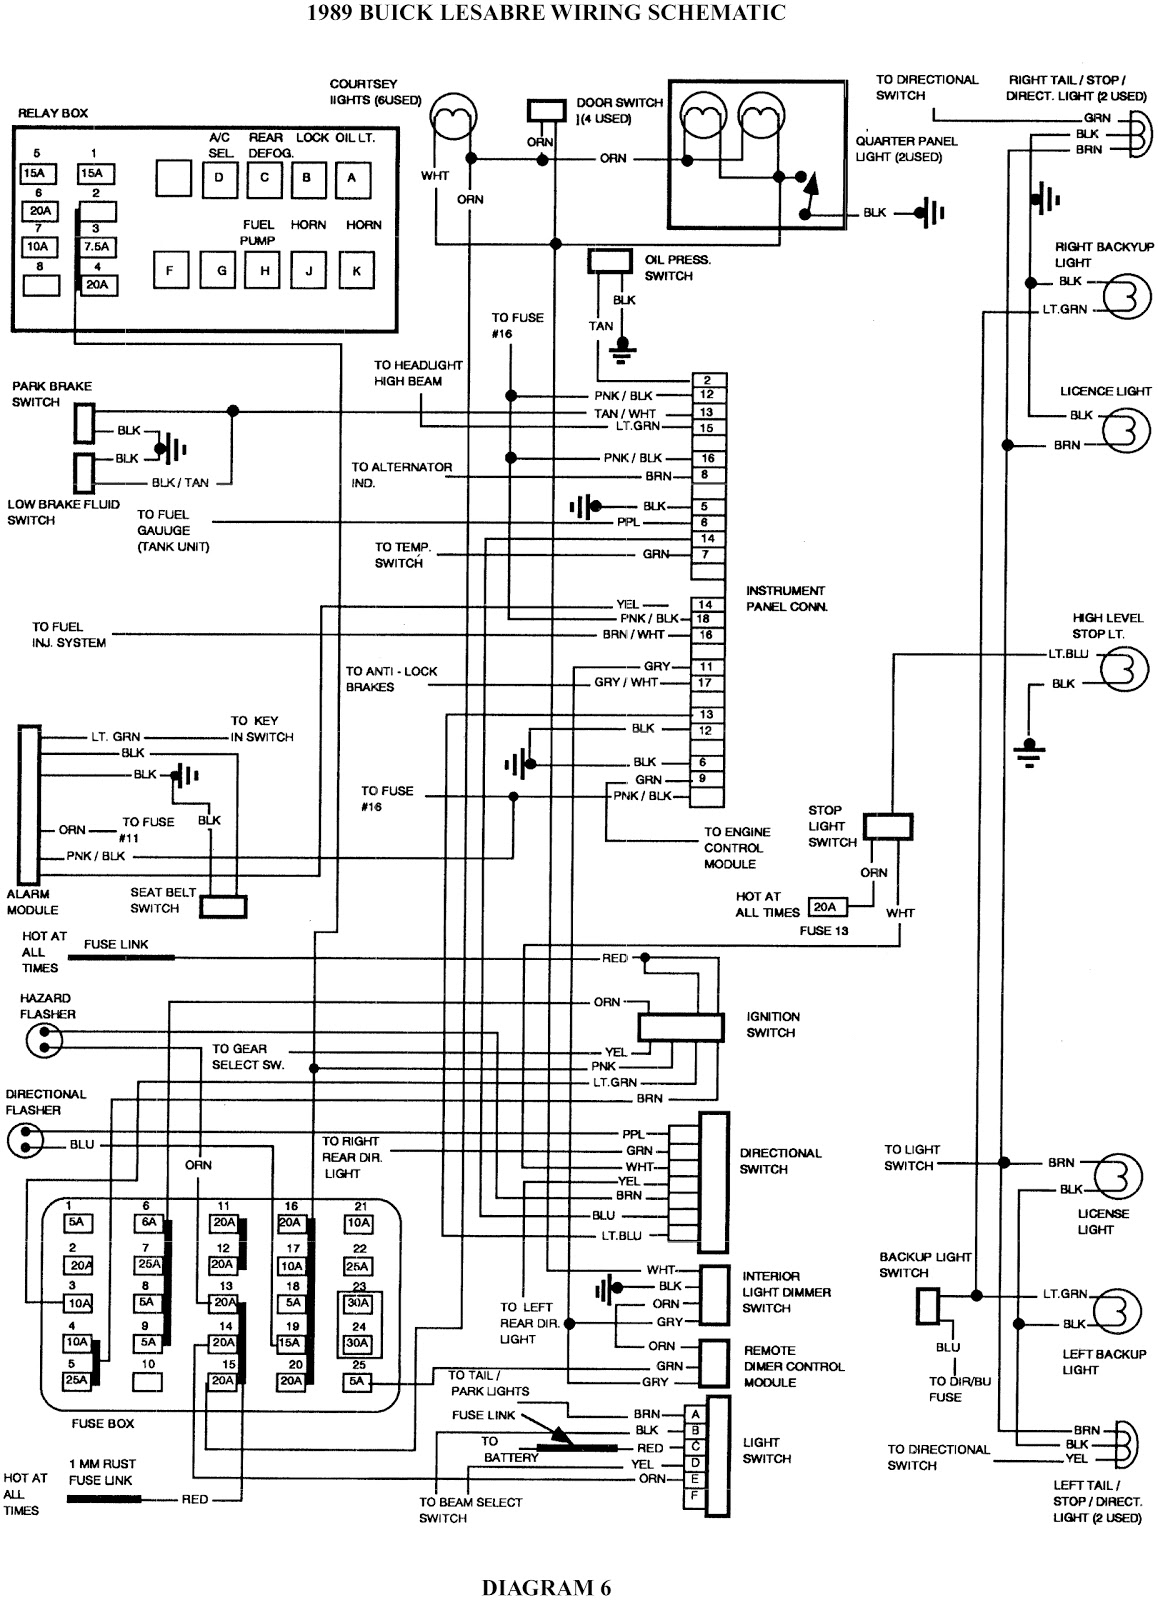 1989 Buick Lesabre Wiring Schematic on Honda Accord Turn Signal Wiring Diagram